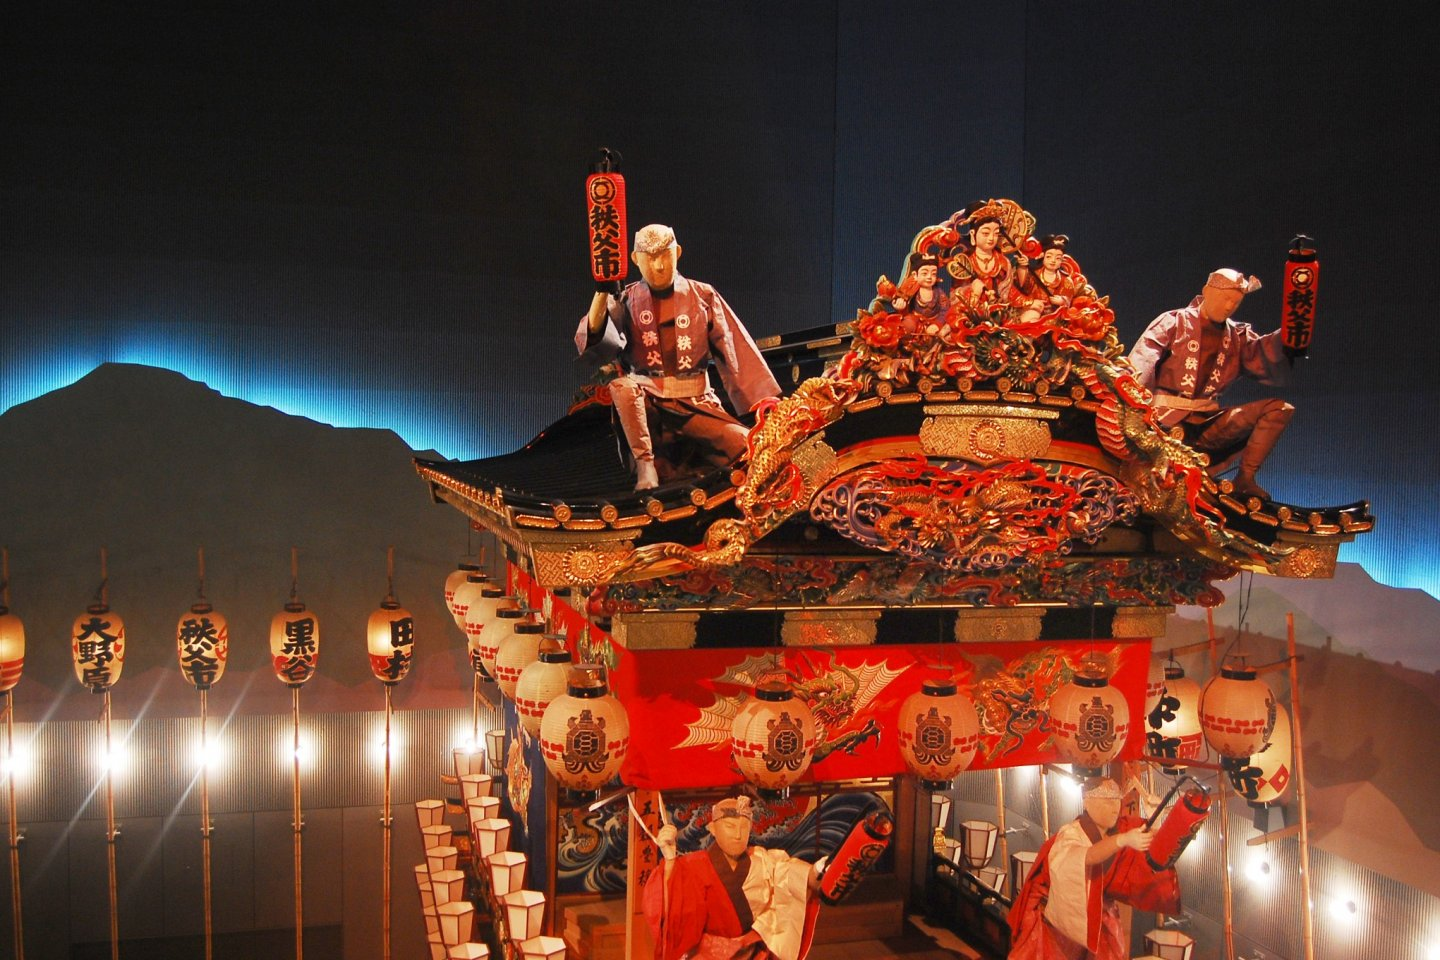 One of the float or Yatai with its diorama